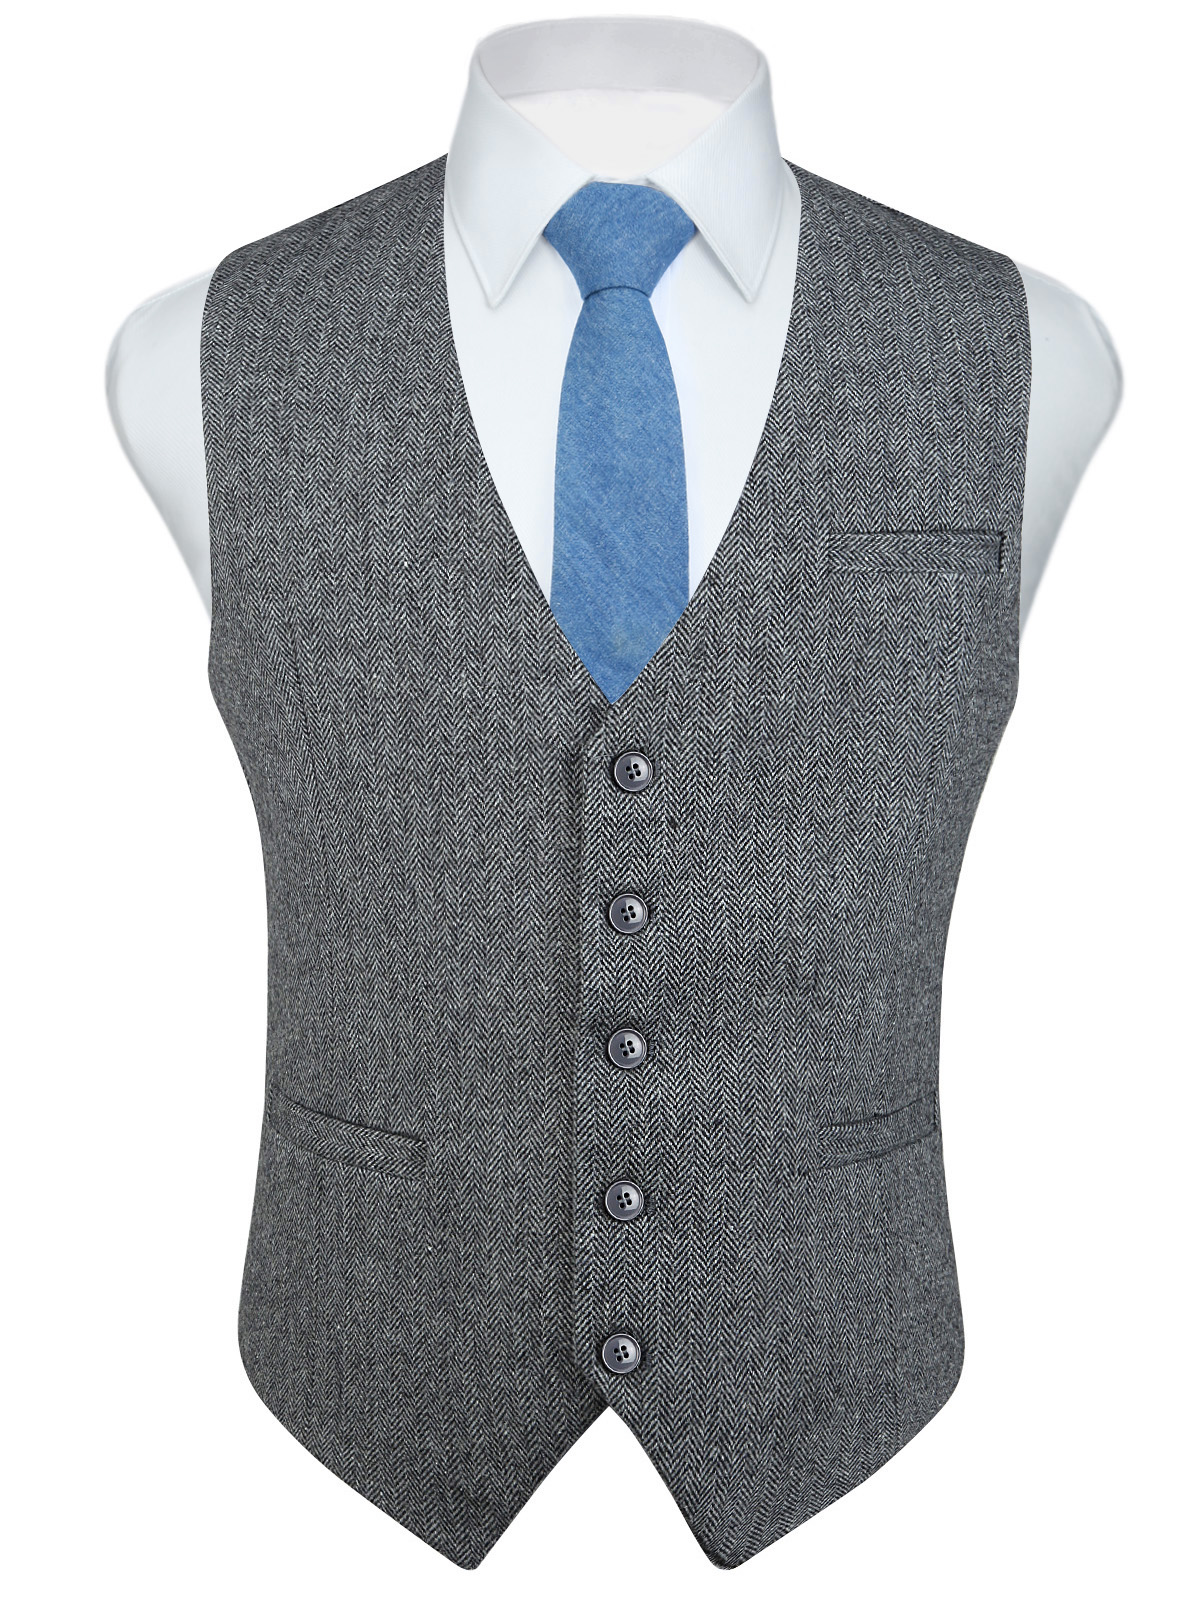 Fashion Men's Herringbone Tweed Business Suits Vest Slim Fit Fullback Wool Blend Dress Waistcoat For Suit Or Tuxedo